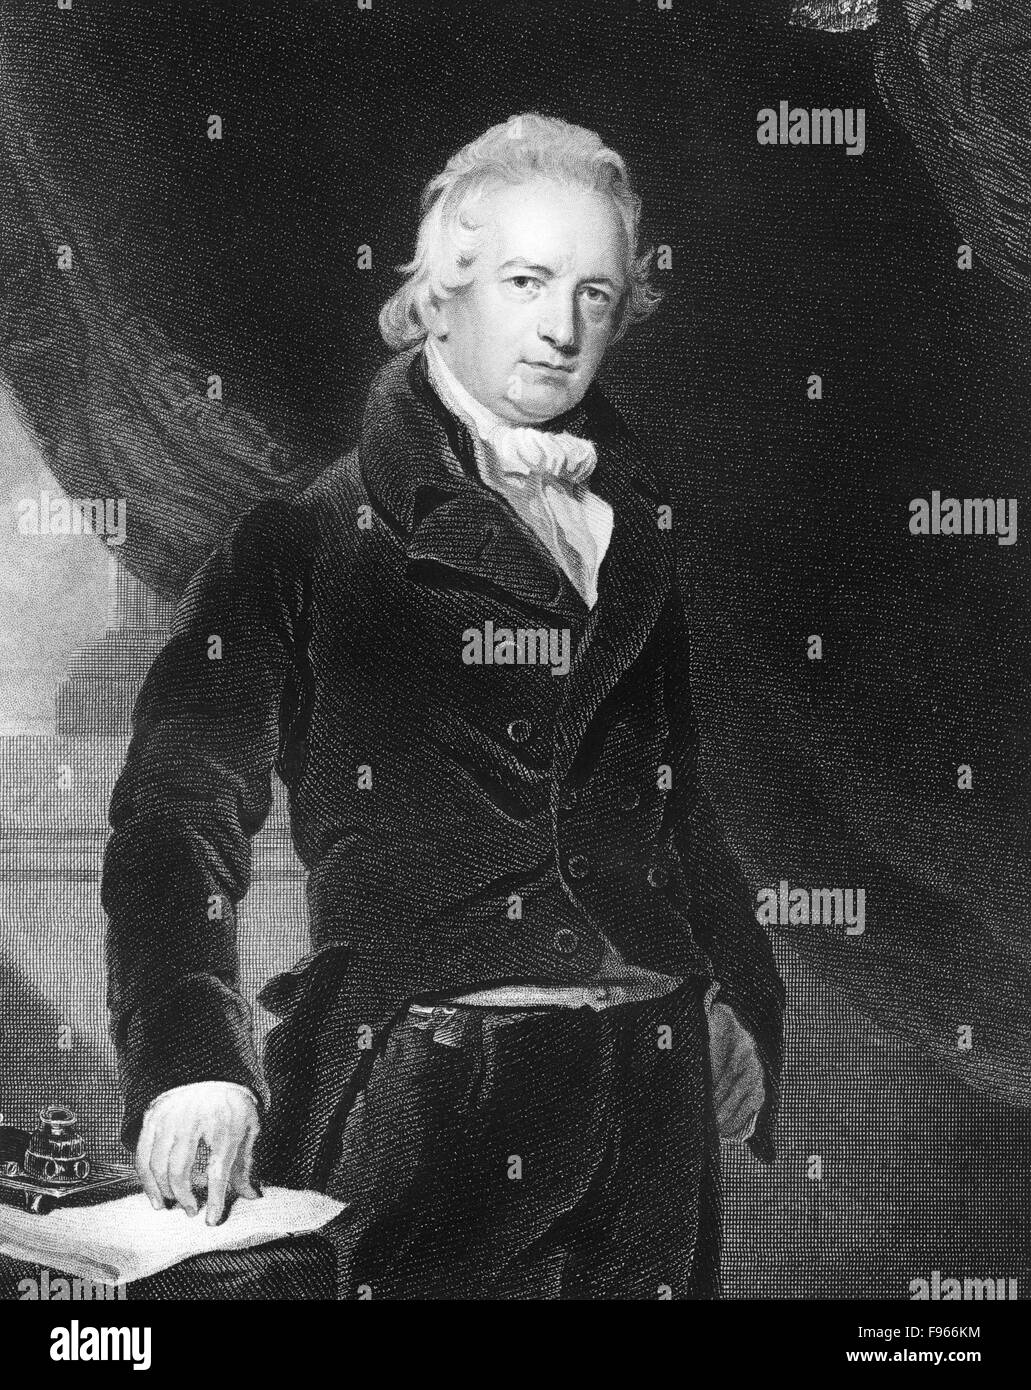 John Abernethy, English surgeon and anatomist, 19th Century, Historischer Stahlstich aus dem 19. Jahrhundert, Portrait, - Stock Image